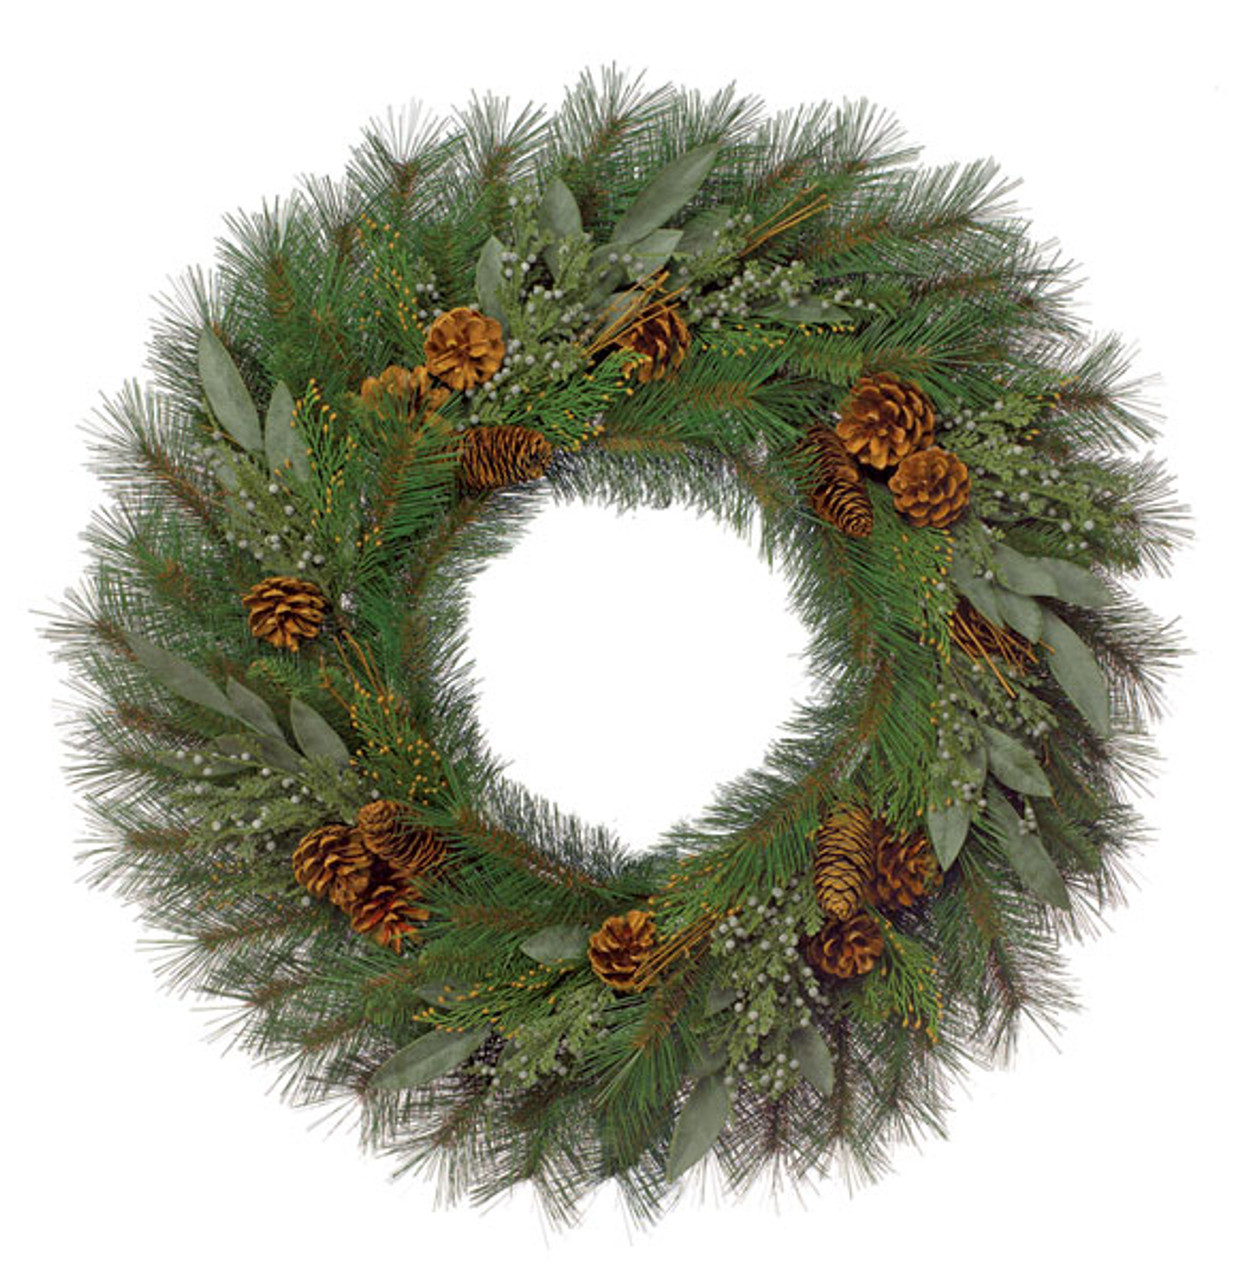 30 Inch Mixed Pine Wreath With Pine Cones Autograph Foliages